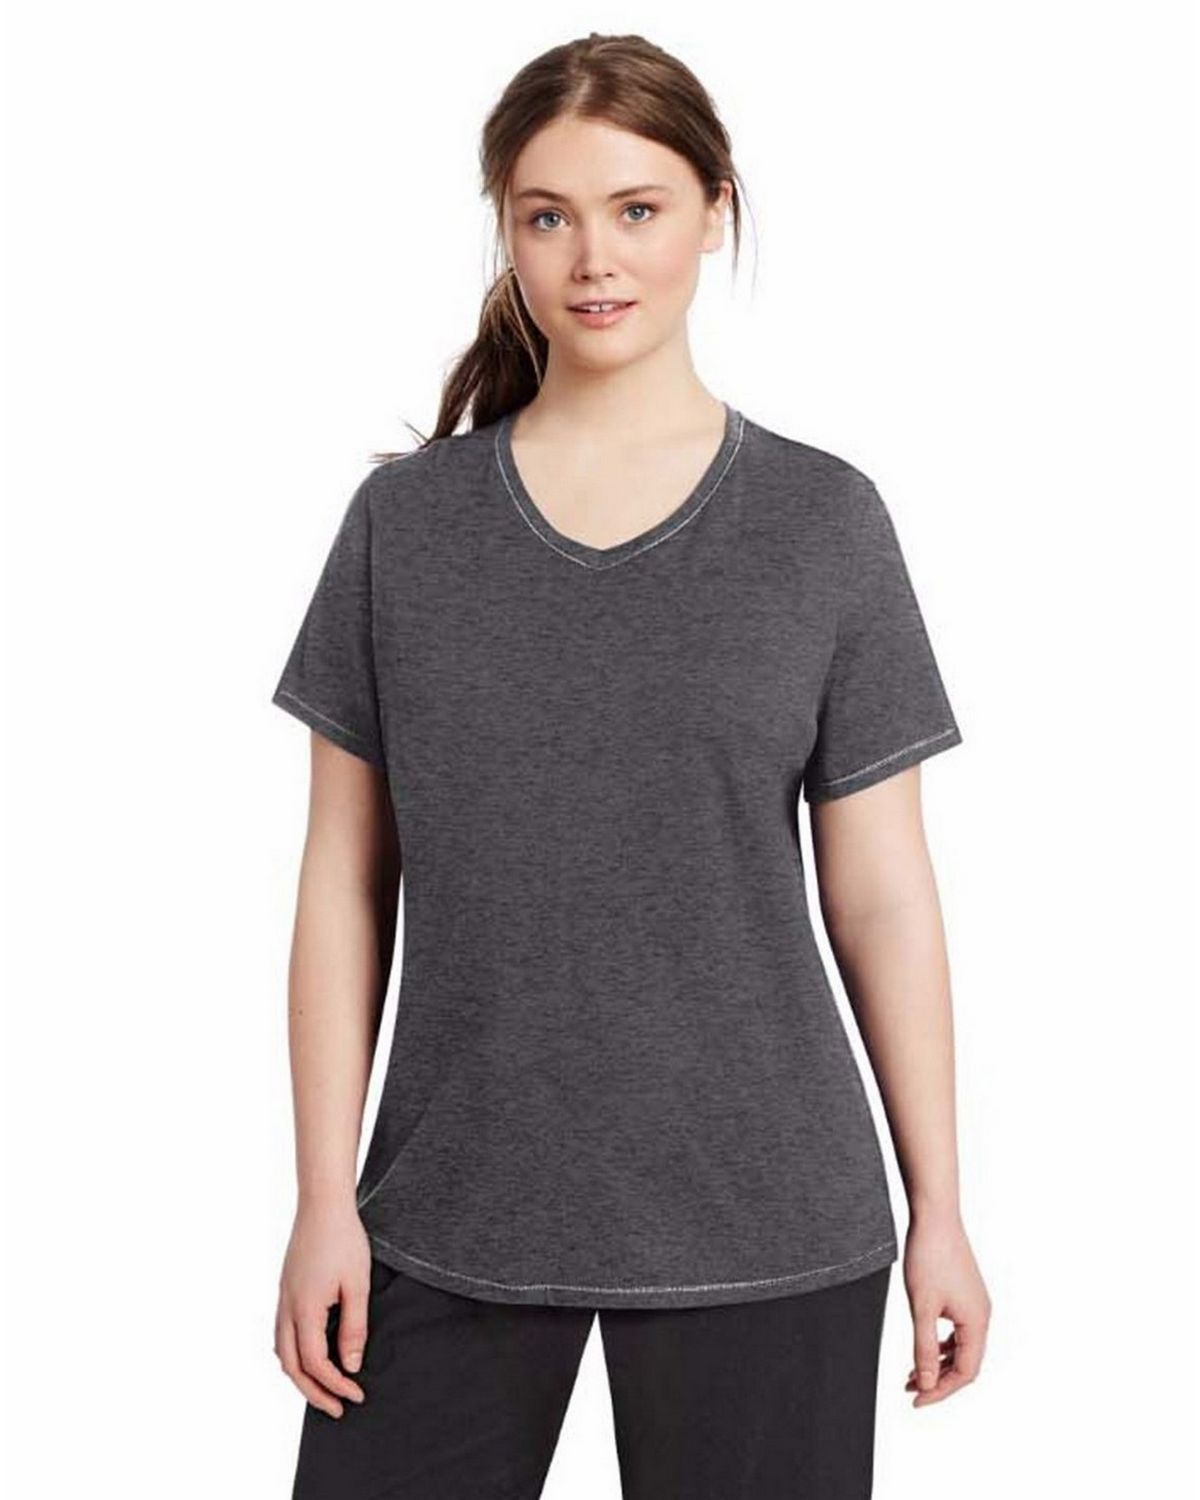 Champion QW1244 Womens Plus Jersey V-Neck - Granite Heather - 2X QW1244